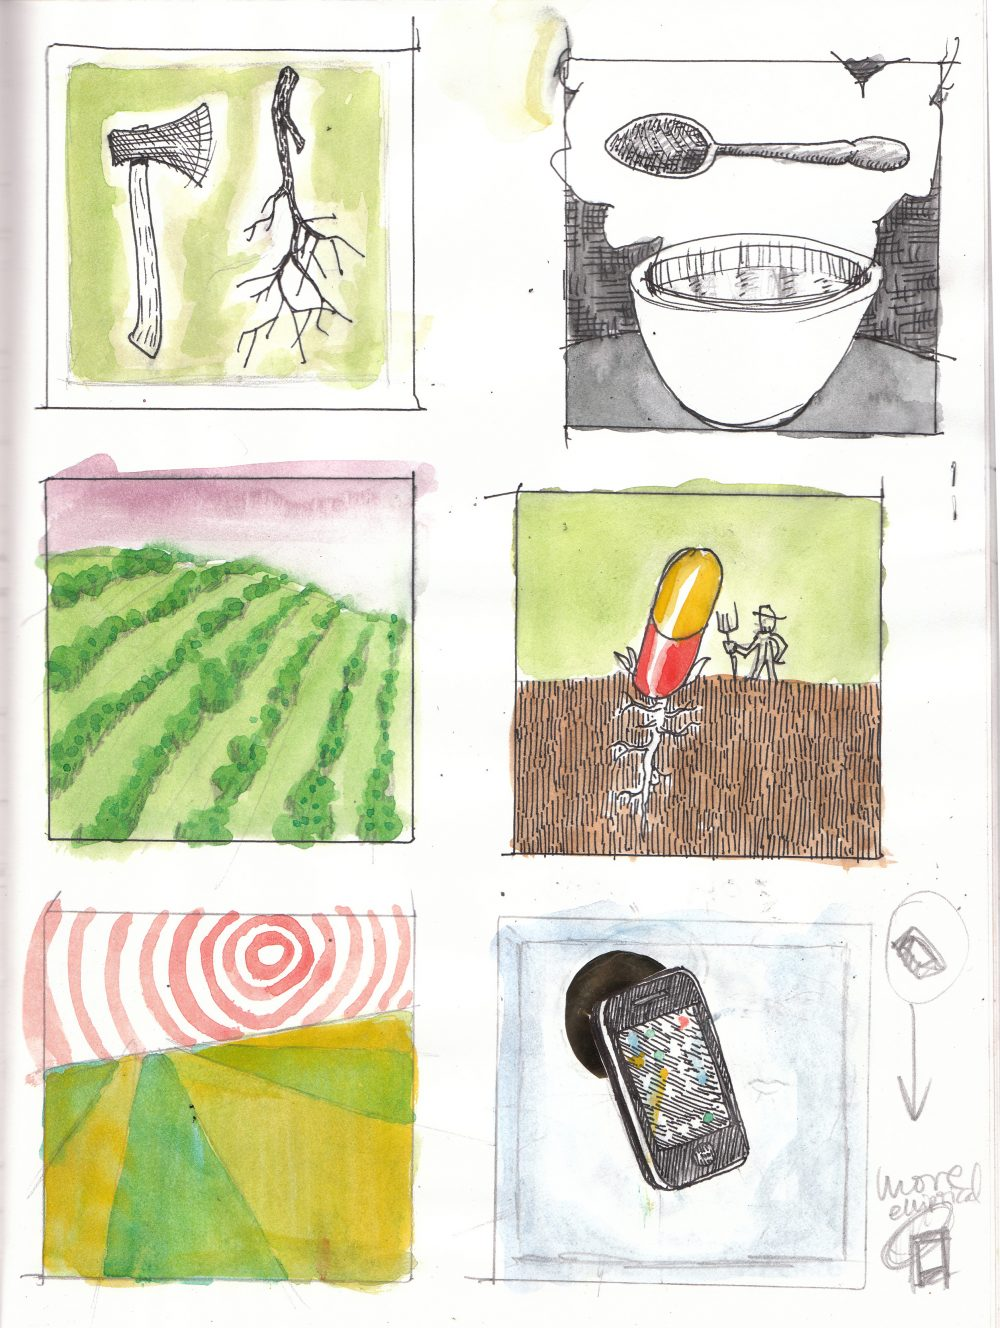 A 2 x 3 grid of square sketches with watercolor. The content of the sketches loosely relates to nature and technology, for example an ax and a smart phone.